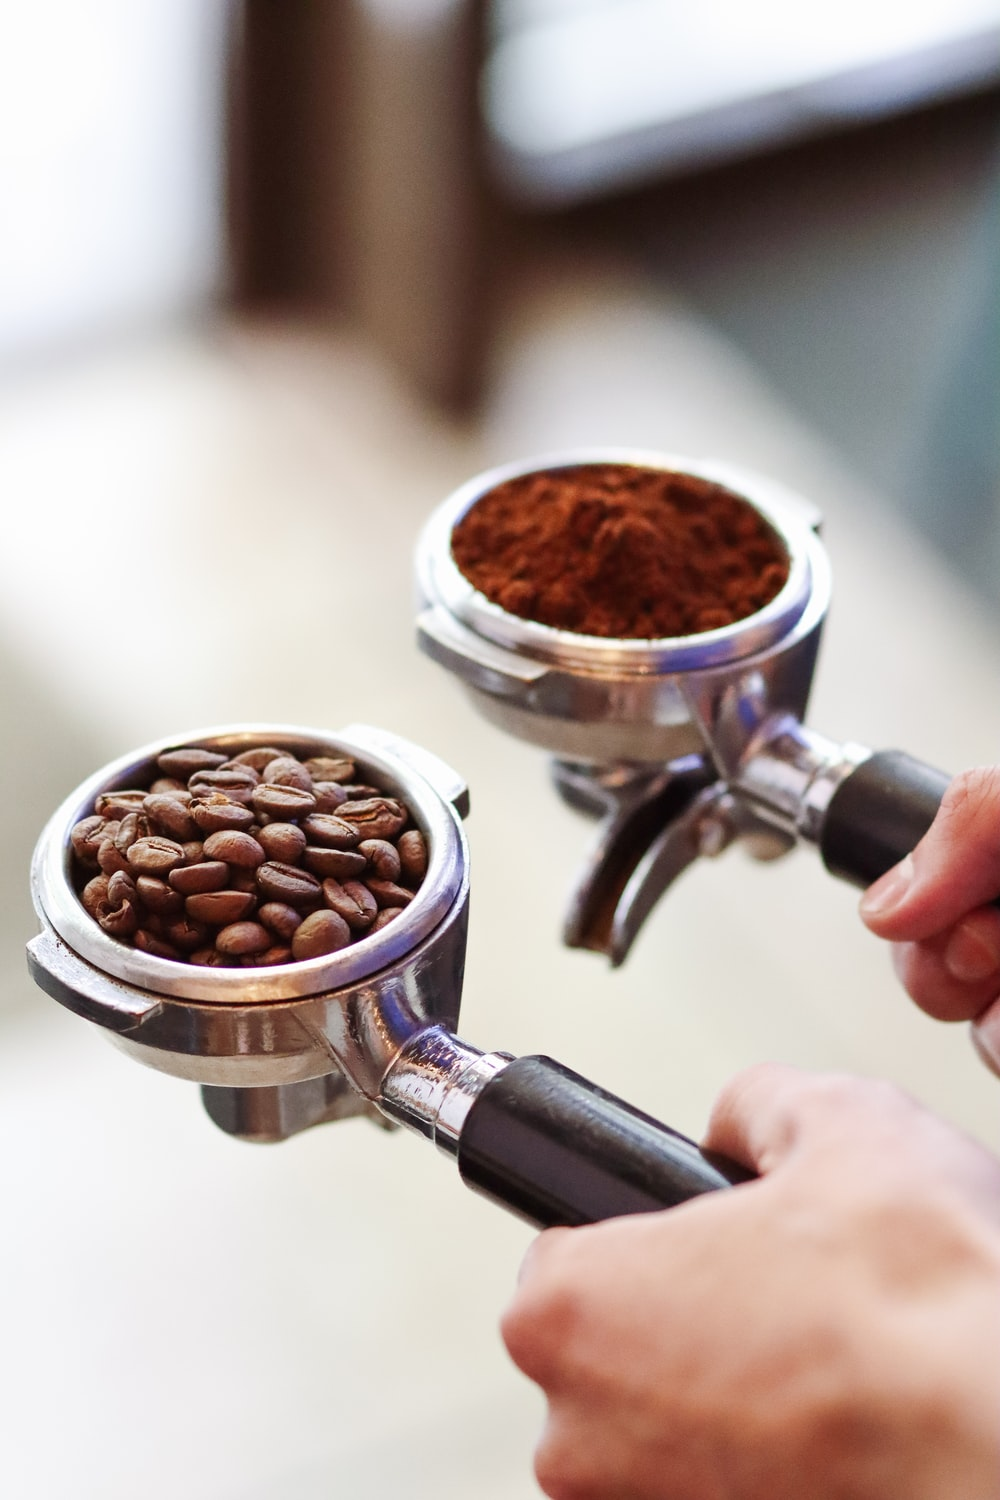 person pouring coffee on coffee beans in white ceramic mug